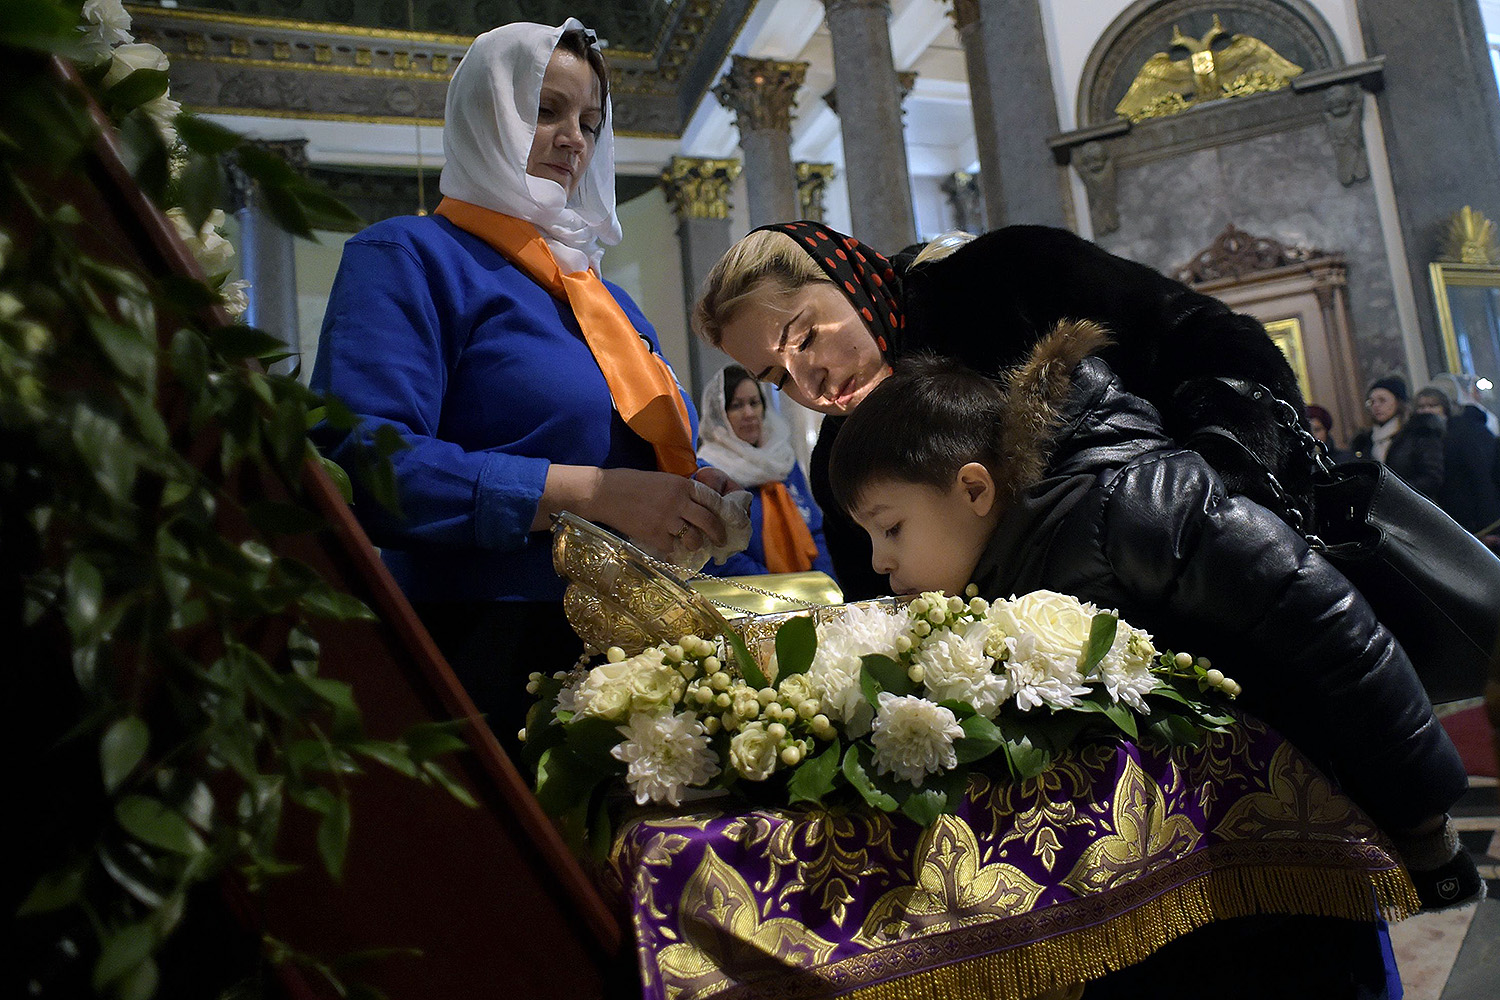 Russian Orthodox believers kiss a relic of St. John the Baptist at Kazan Cathedral in Saint Petersburg on March 15. The shrine was on loan from Jerusalem for a week, and tens of thousands came out to kiss it. OLGA MALTSEVA/AFP via Getty Images